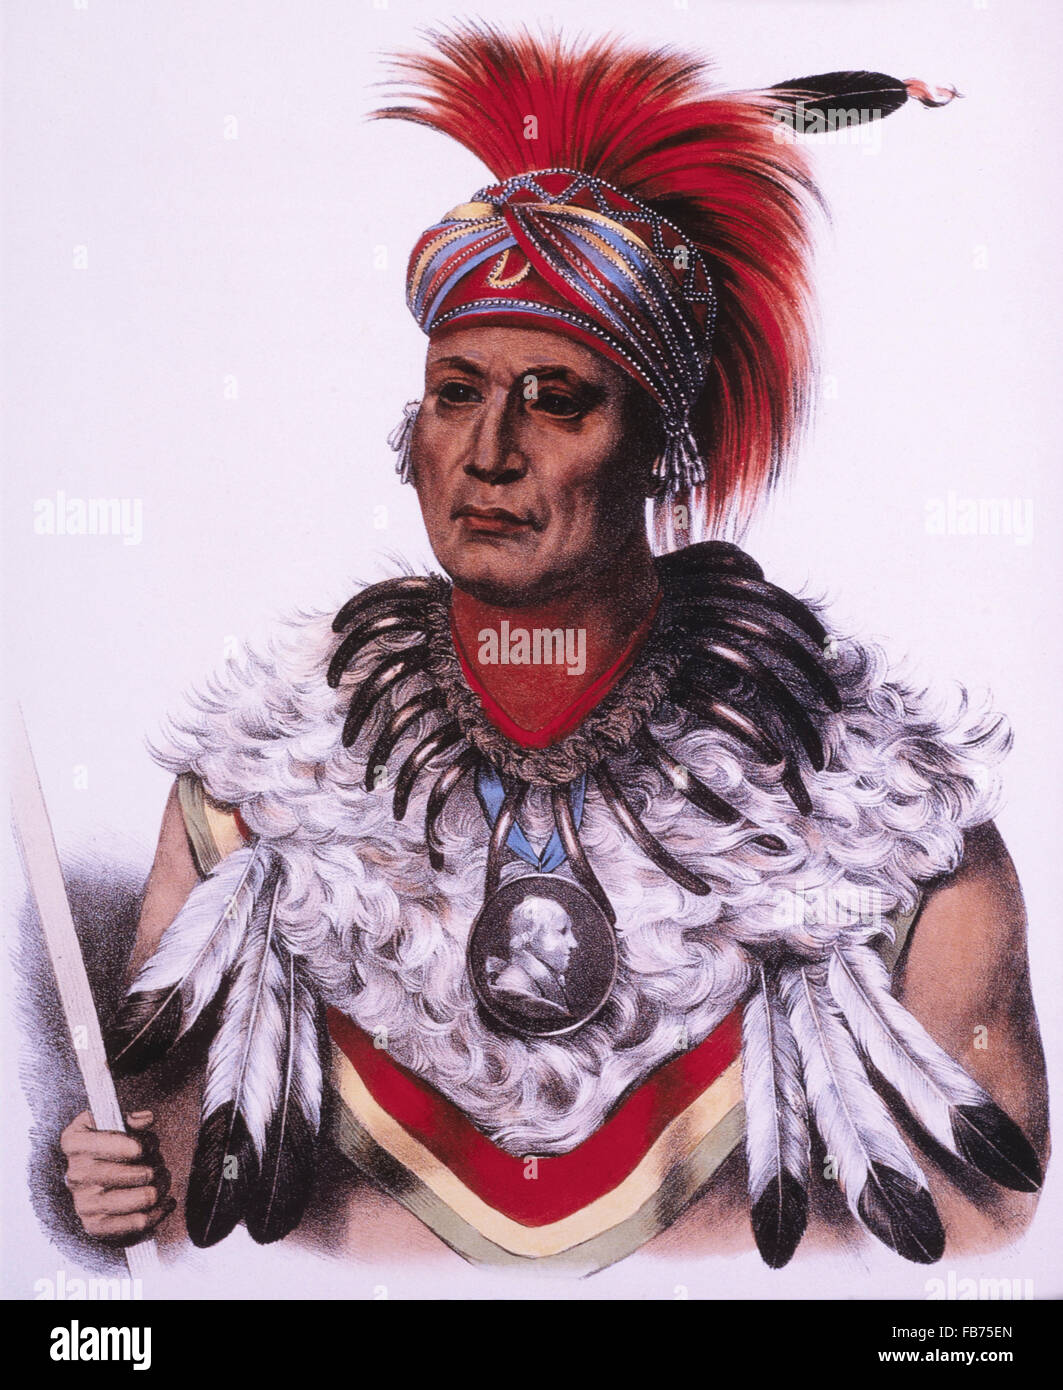 Wa-Pel-La, Musquakee Chief, Lithograph by McKenney and Hall after Painting by Charles Bird King, circa 1838 - Stock Image